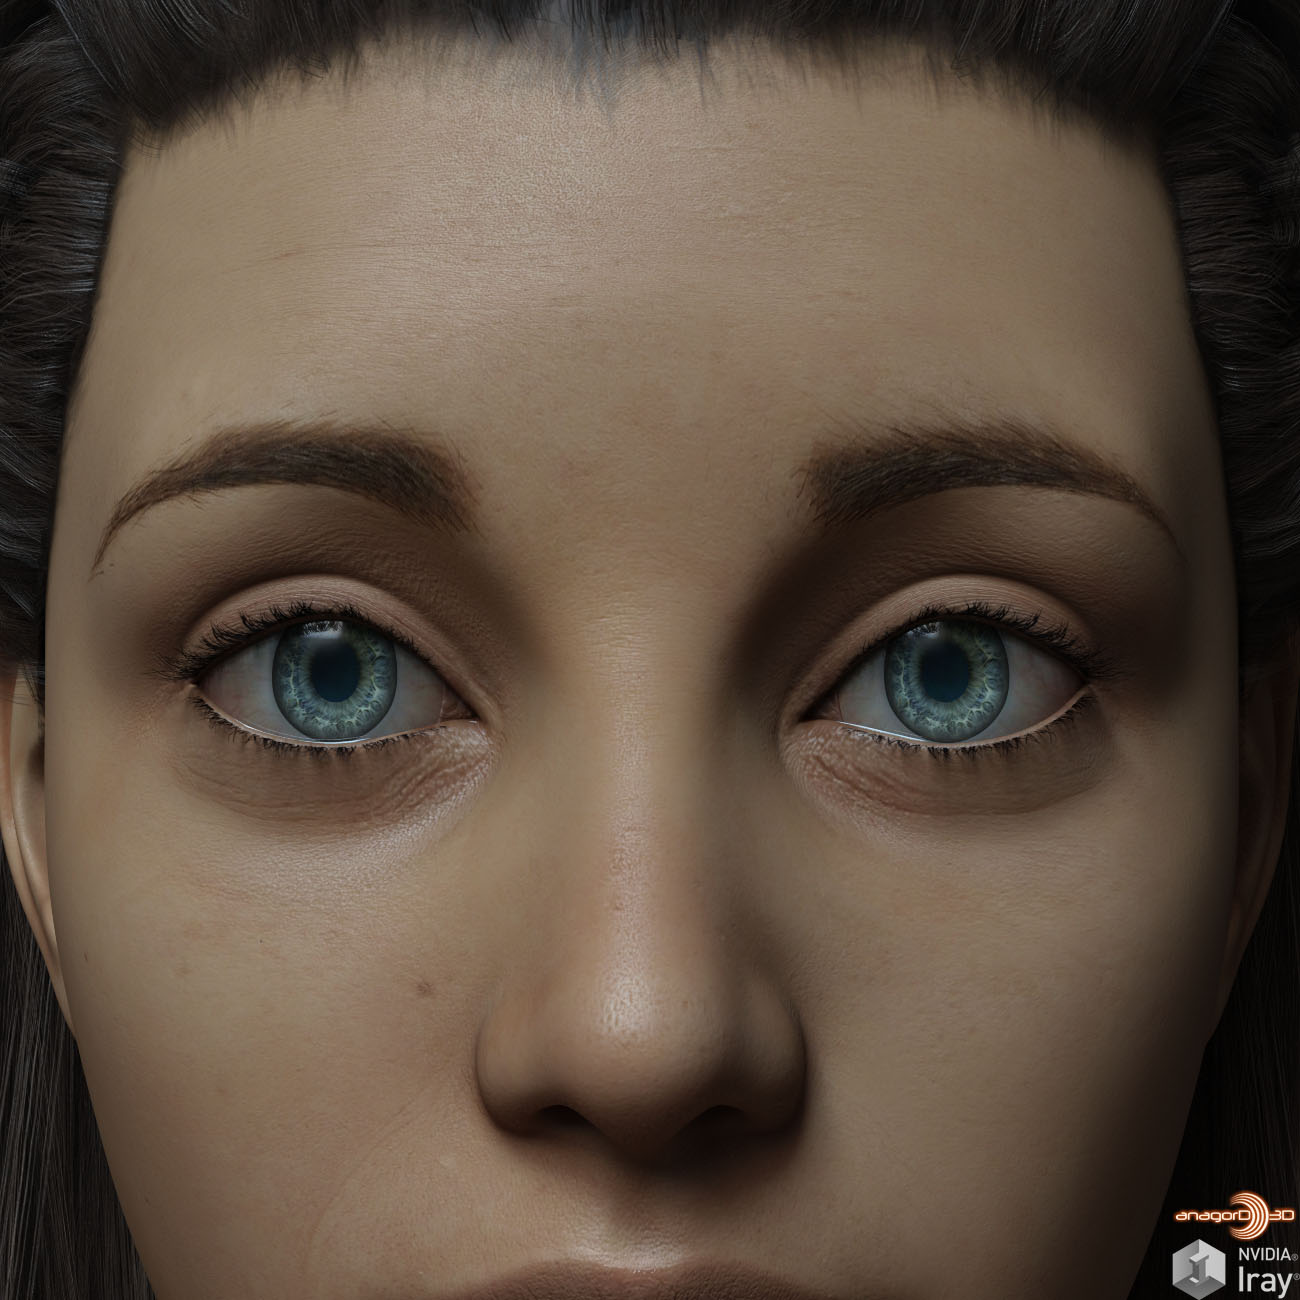 Eyes and Eyebrows Morphs G8 Vol2 by Anagord